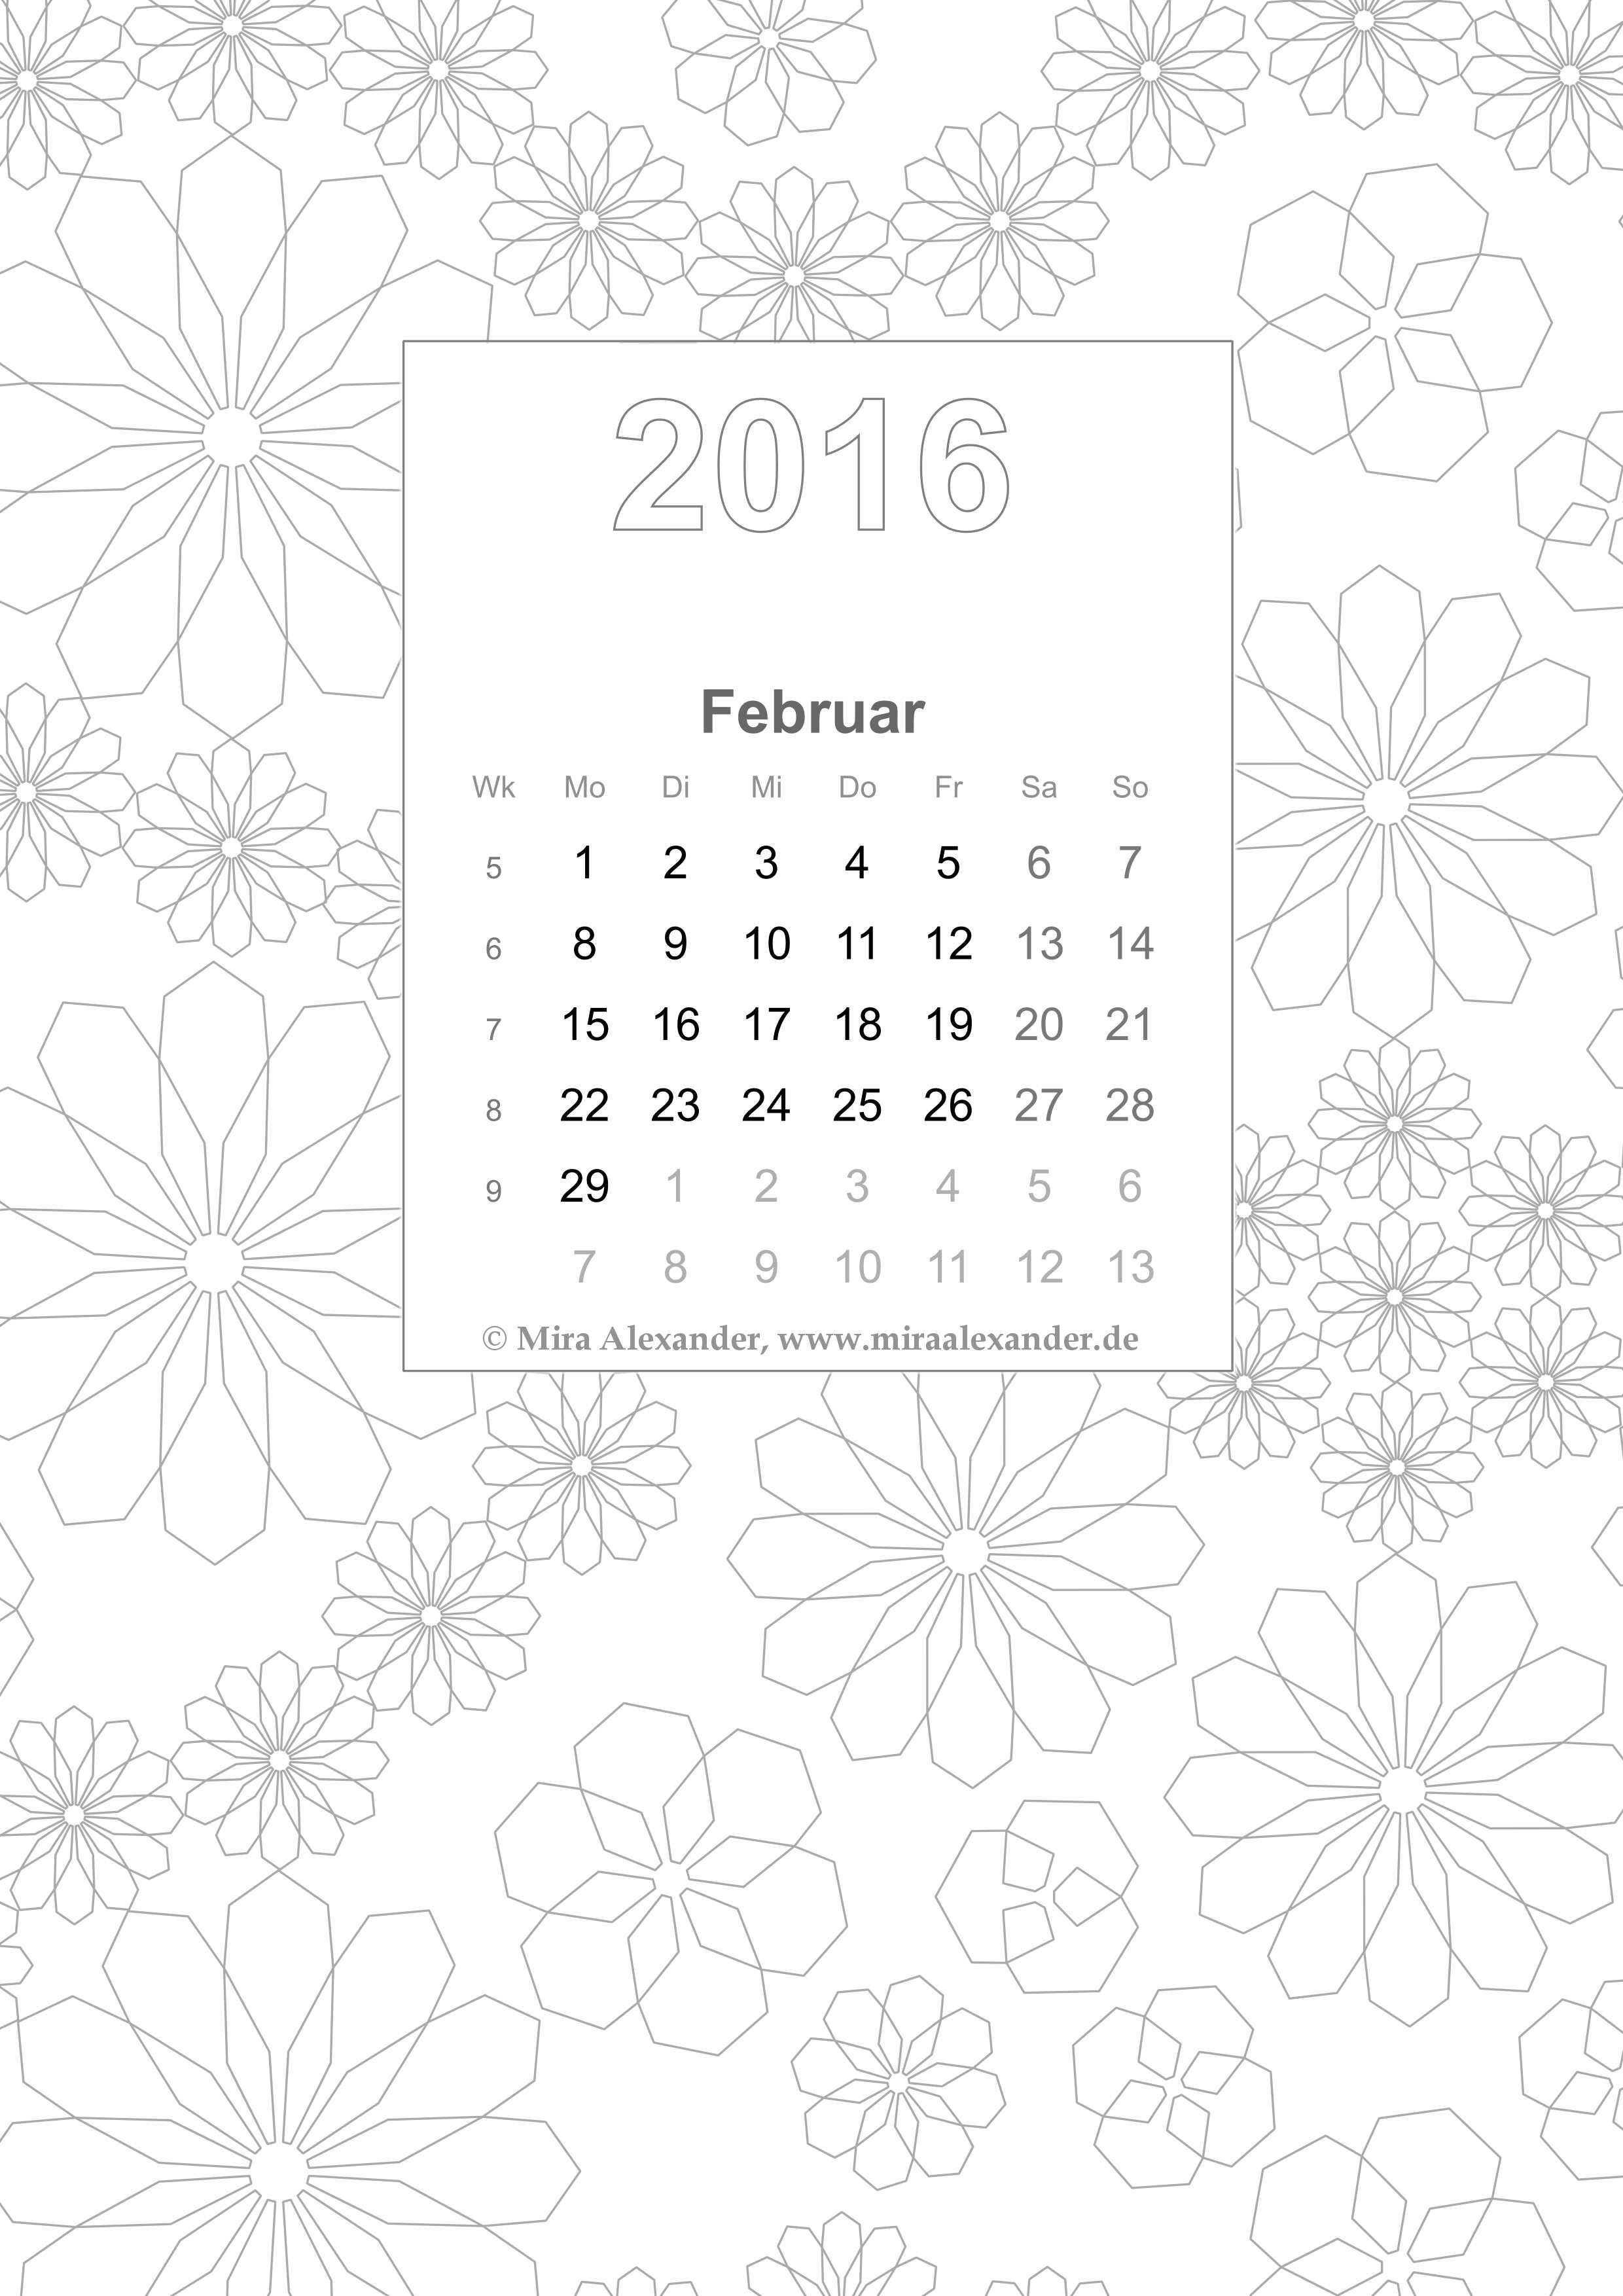 Coloring Book Calendar 2016/02 (private use only / nur für privaten Gebrauch); © Mira Alexander; right-click and safe for download / Rechtsklick und Speichern zum Herunterladen